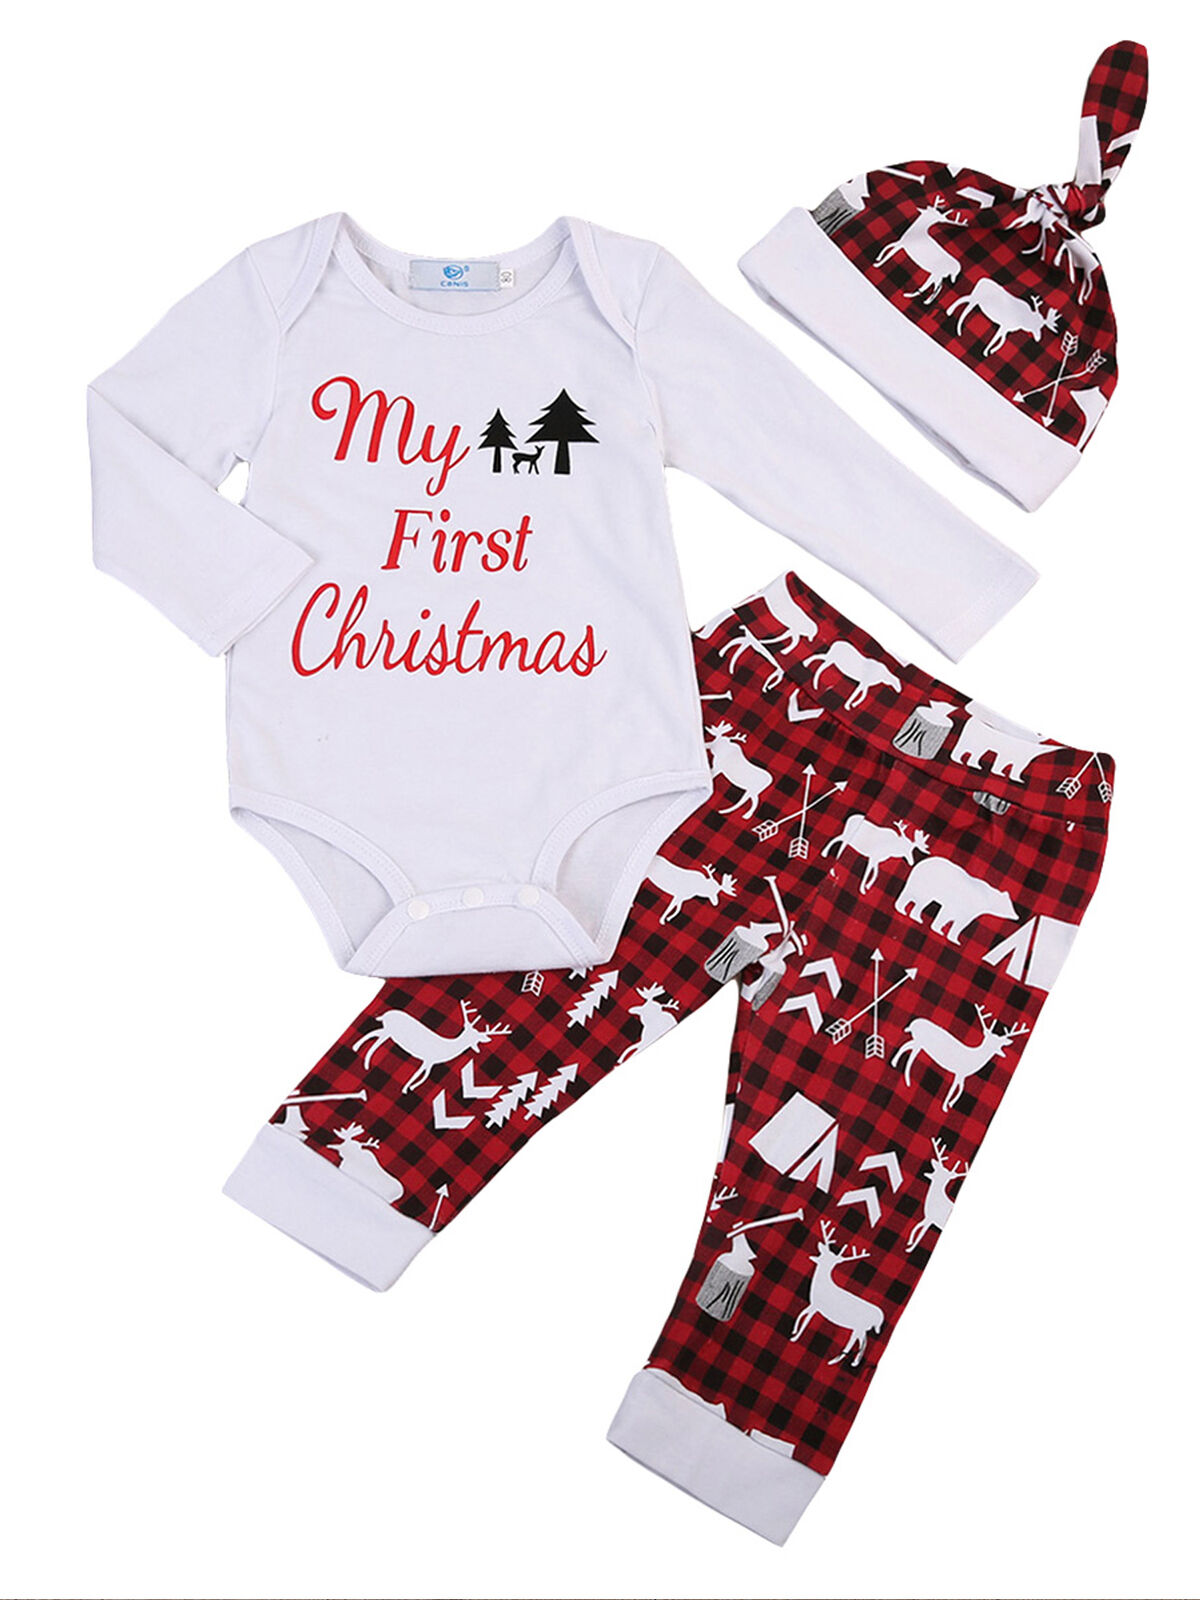 Newborn Girl Boy My First Christmas Outfit Set Bodysuit Pants Hat Infant Baby Christmas Clothes Set